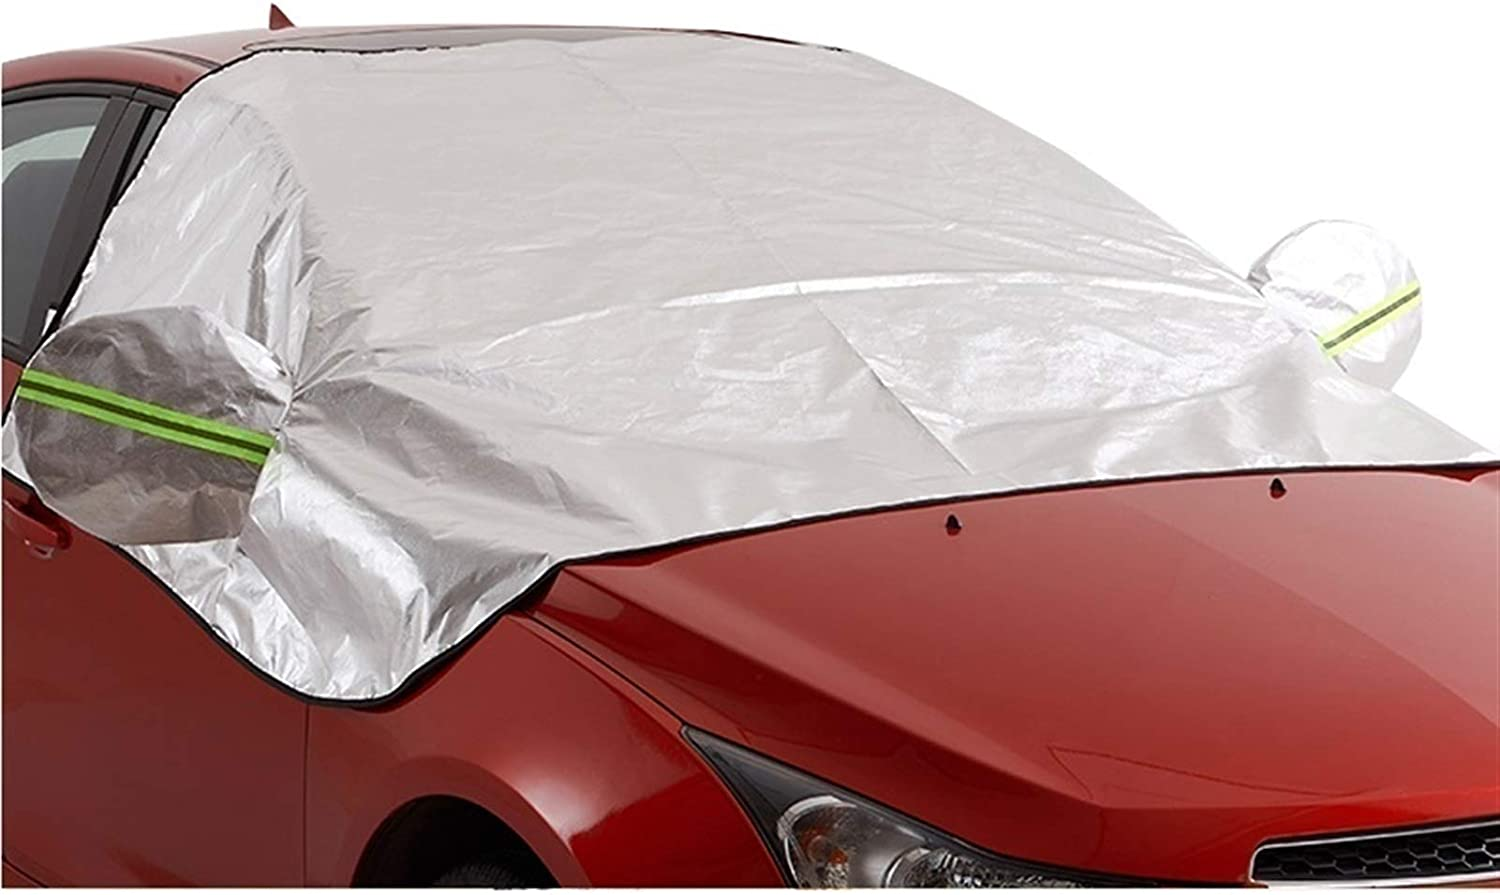 Sales for sale BACKJIA Car Cover Max 86% OFF Windshield Outdoor Waterproof Durable H